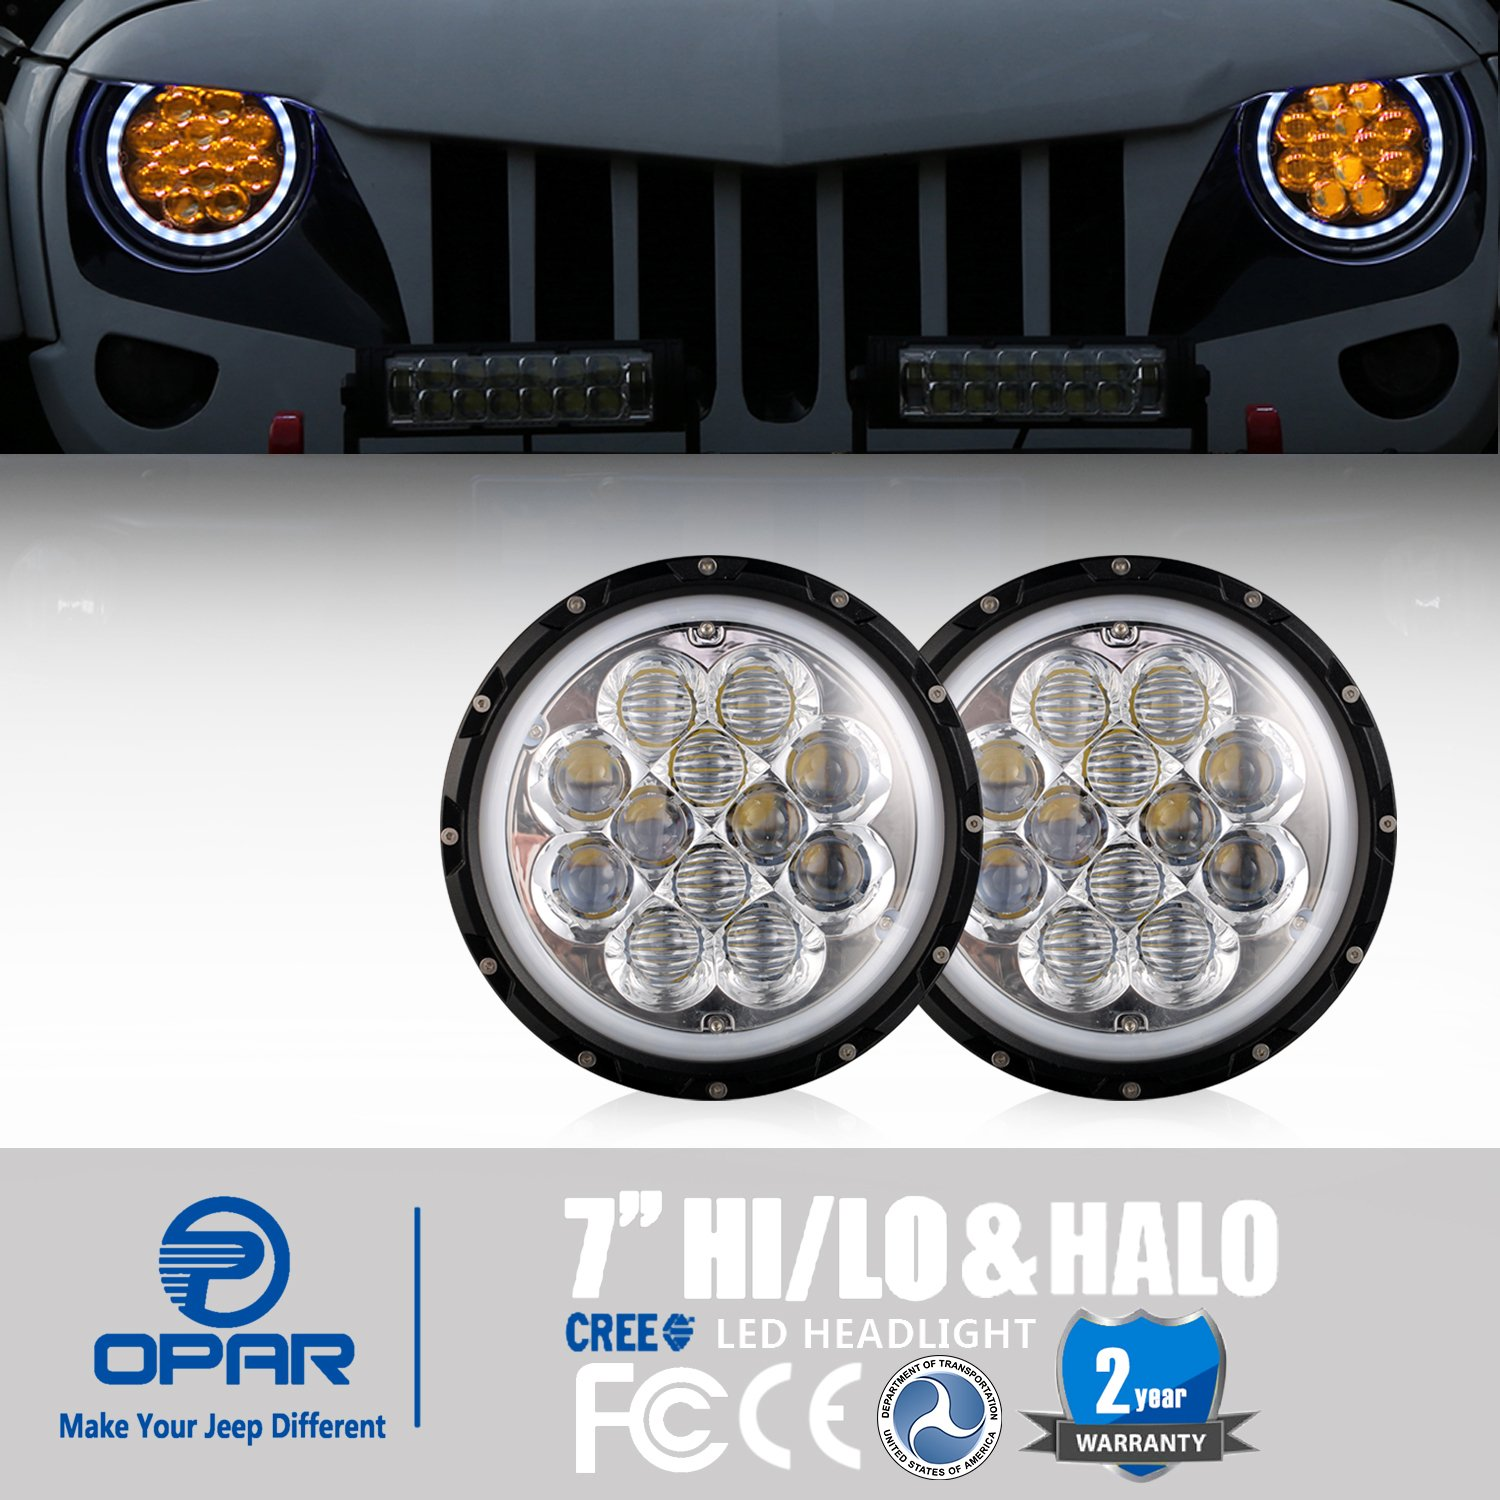 Hooke Road 7 Inch Amber Spider Drl Halo Led Headlights 1972 Jeep Truck Headlight Wiring For 97 18 Wrangler Tj Jk Unlimited Automotive